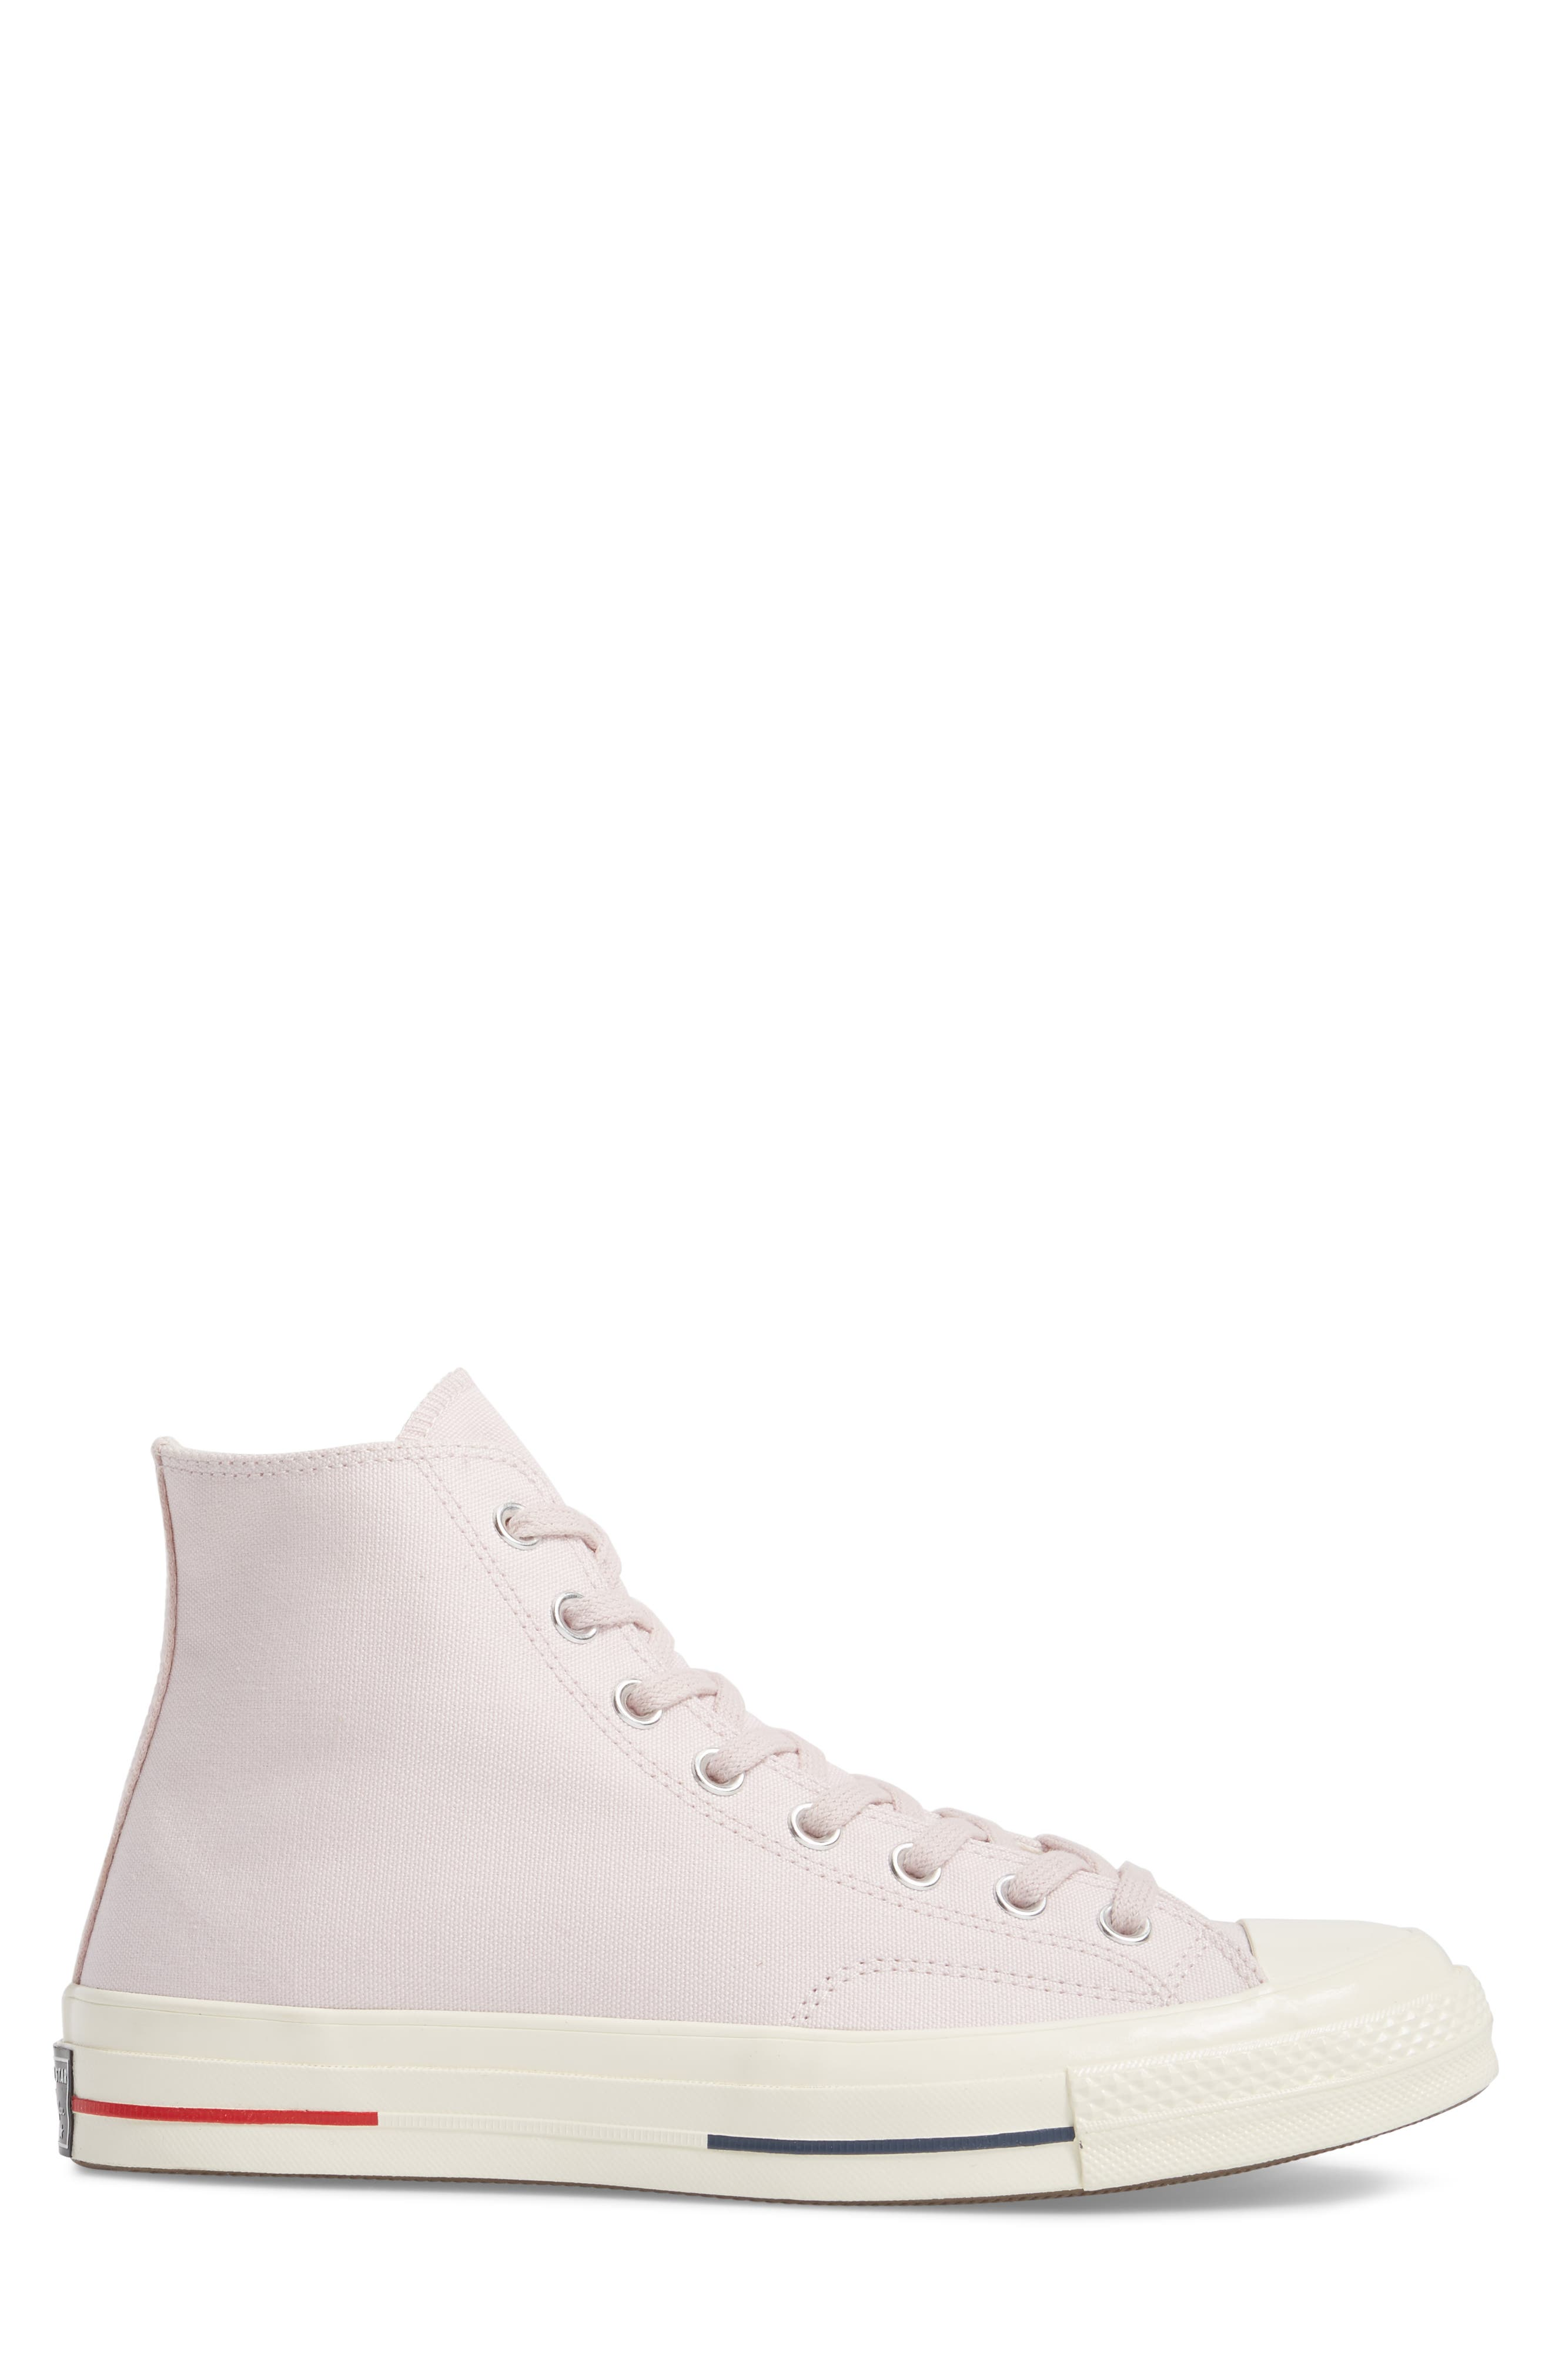 Chuck Taylor<sup>®</sup> All Star<sup>®</sup> '70 Heritage High Top Sneaker,                             Alternate thumbnail 3, color,